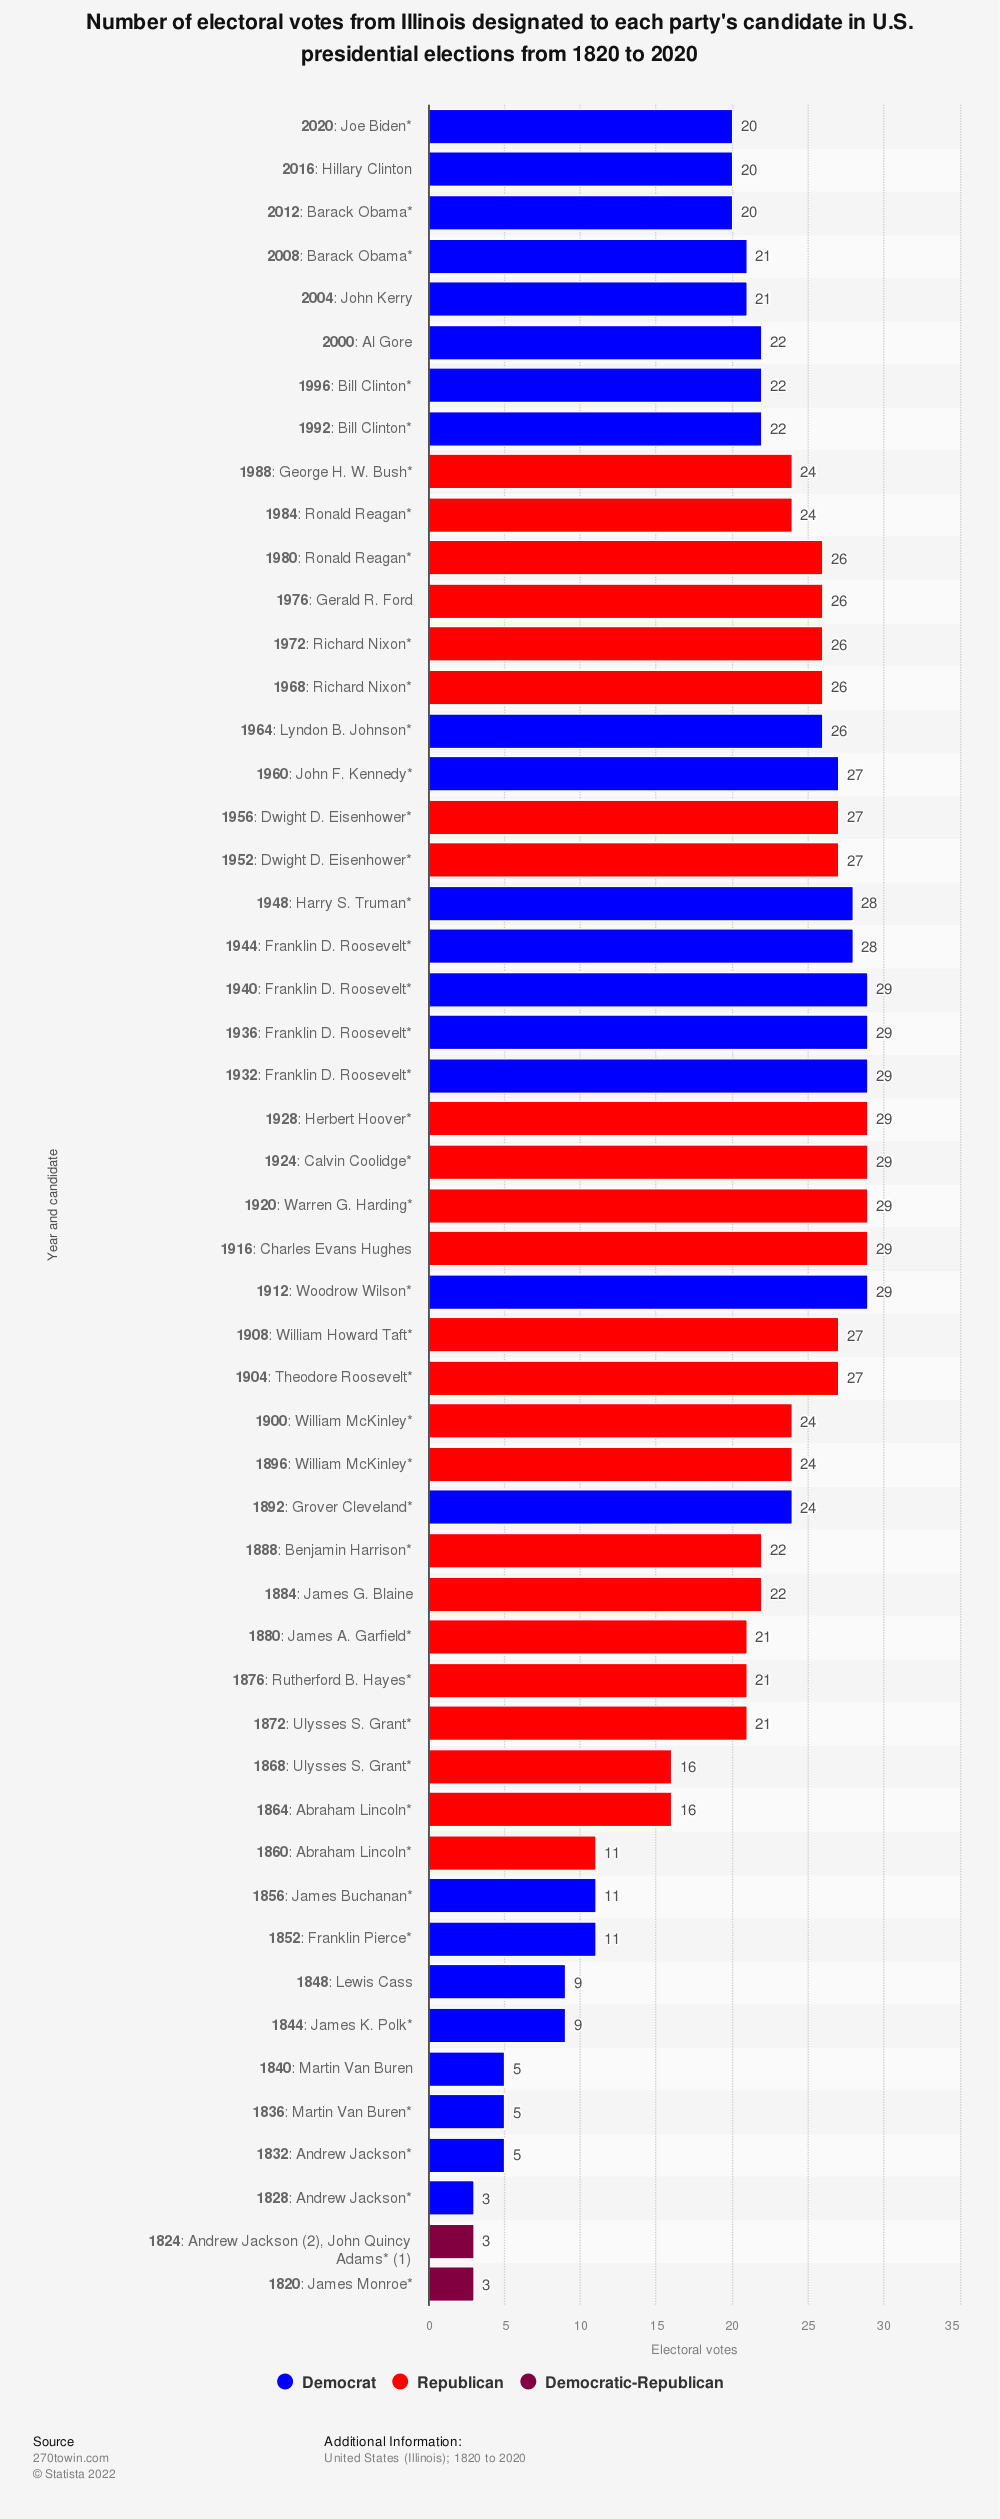 Statistic: Number of electoral votes from Illinois designated to each party's candidate in U.S. presidential elections from 1820 to 2020 | Statista